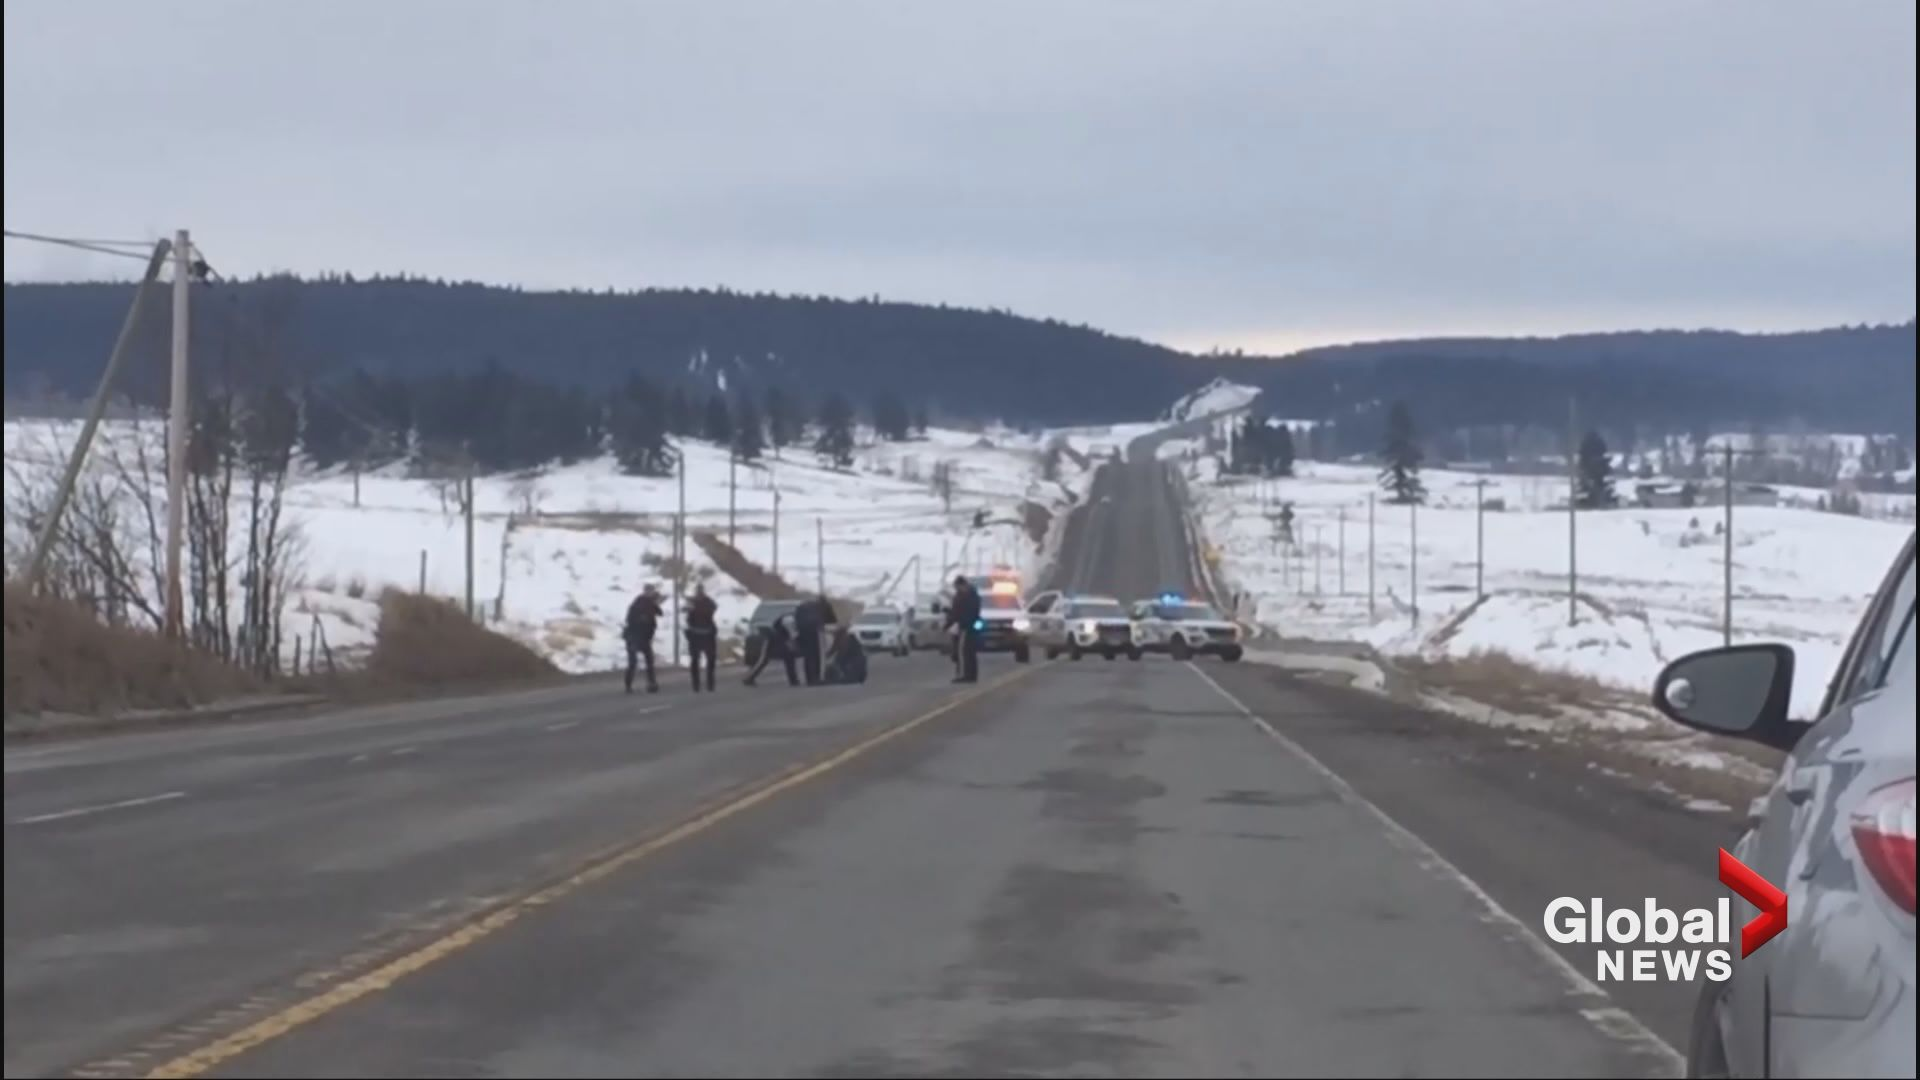 Video shows B.C. RCMP arresting car theft suspects on Highway 97